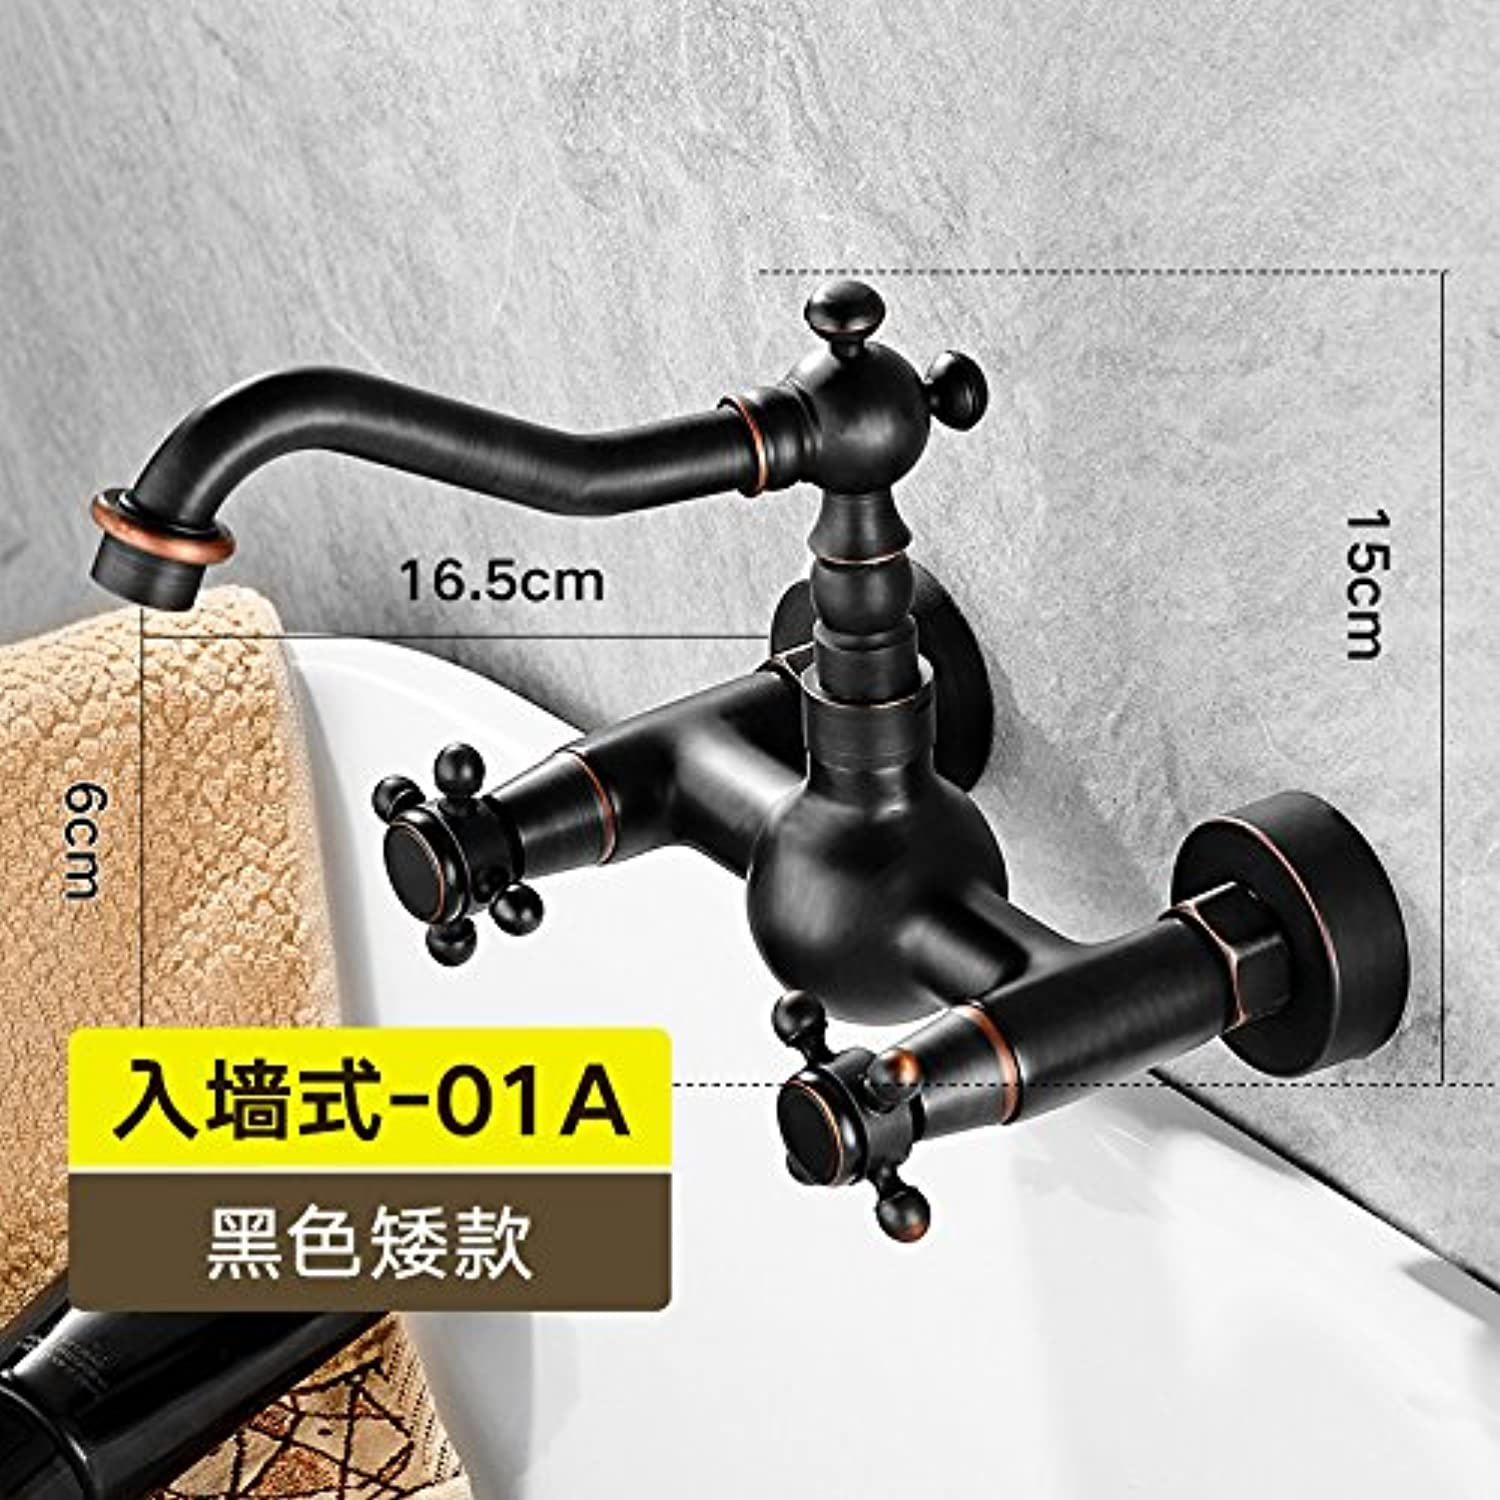 LHbox Basin Mixer Tap The bathrooms are black into full-wall copper wall American check antique faucets continental hand wash basin cold and hot-hole taps, Black low) hand wheel